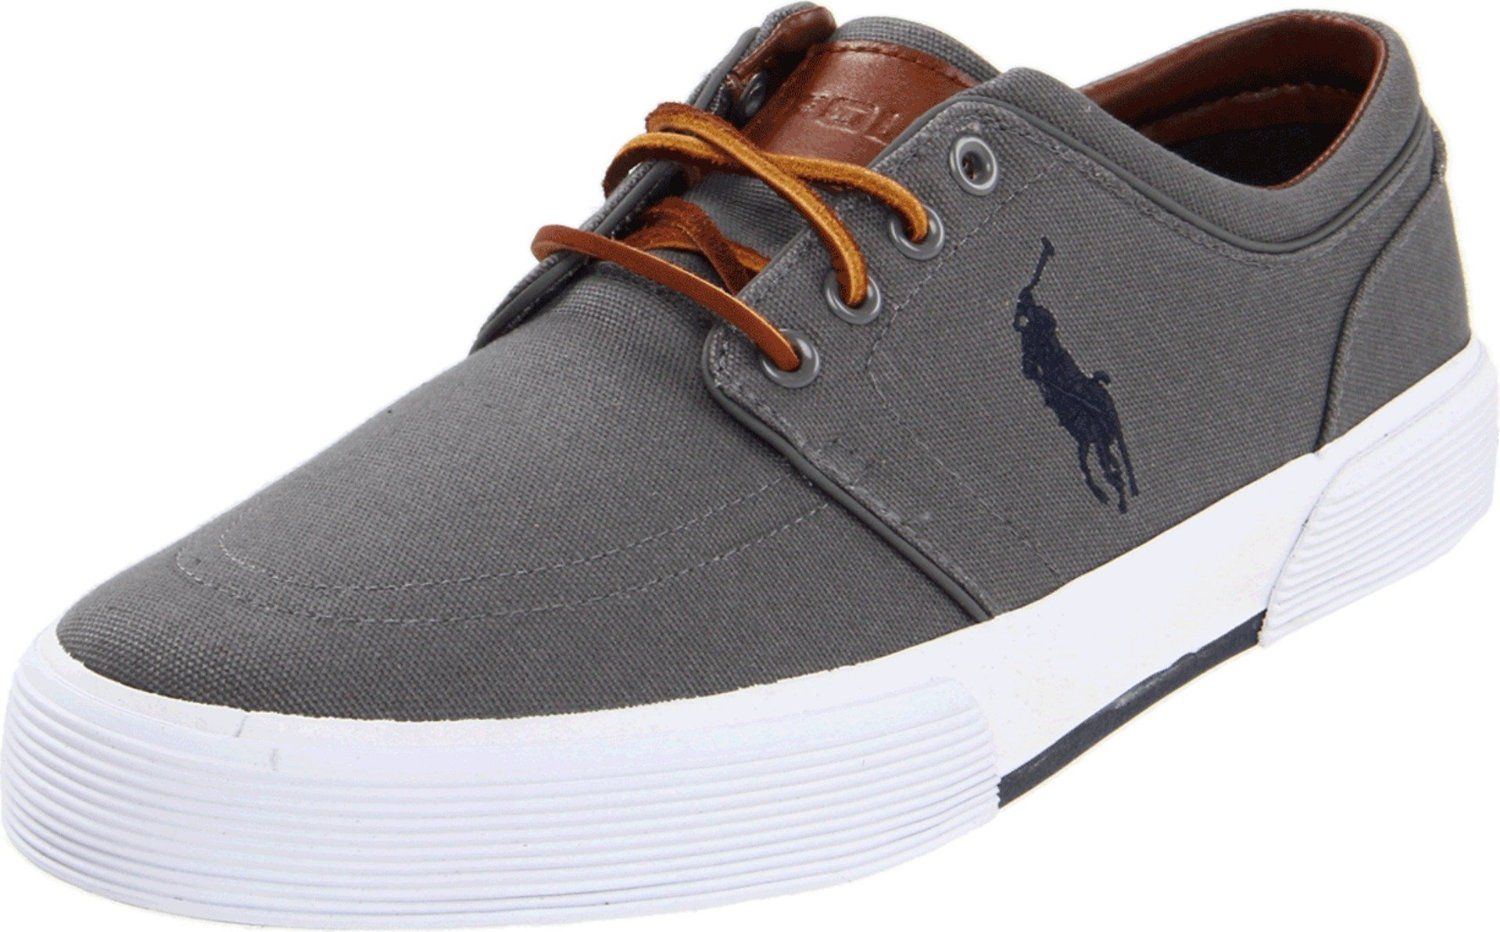 Polo Ralph Lauren Men\u0027s Faxon Low Sneaker - designer shoes, handbags,  jewelry, watches